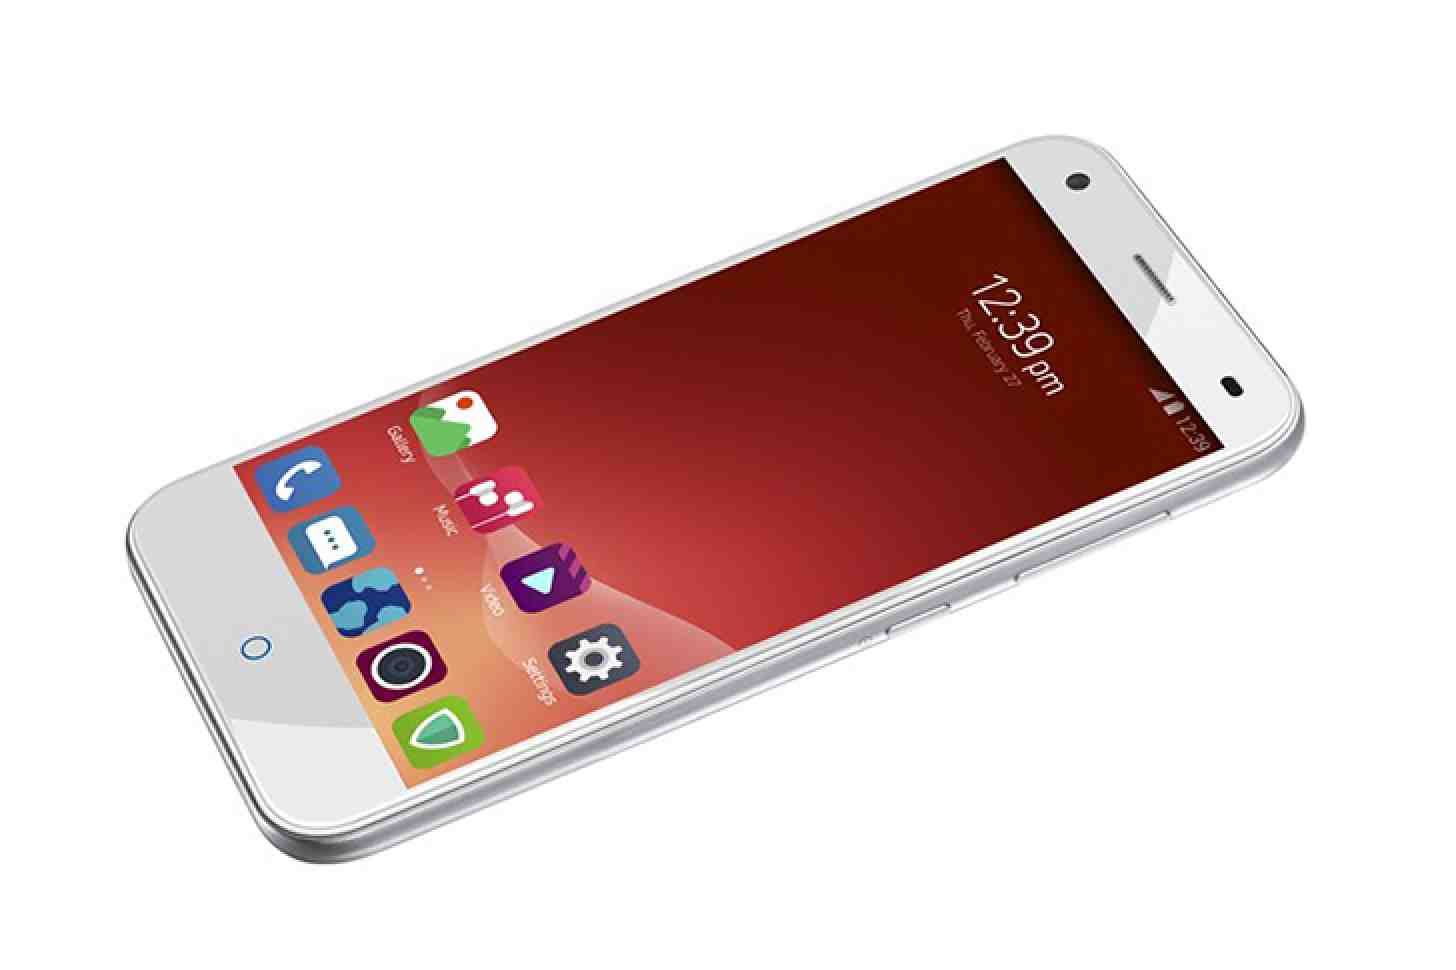 ZTE Blade S6 – Improved Phone2